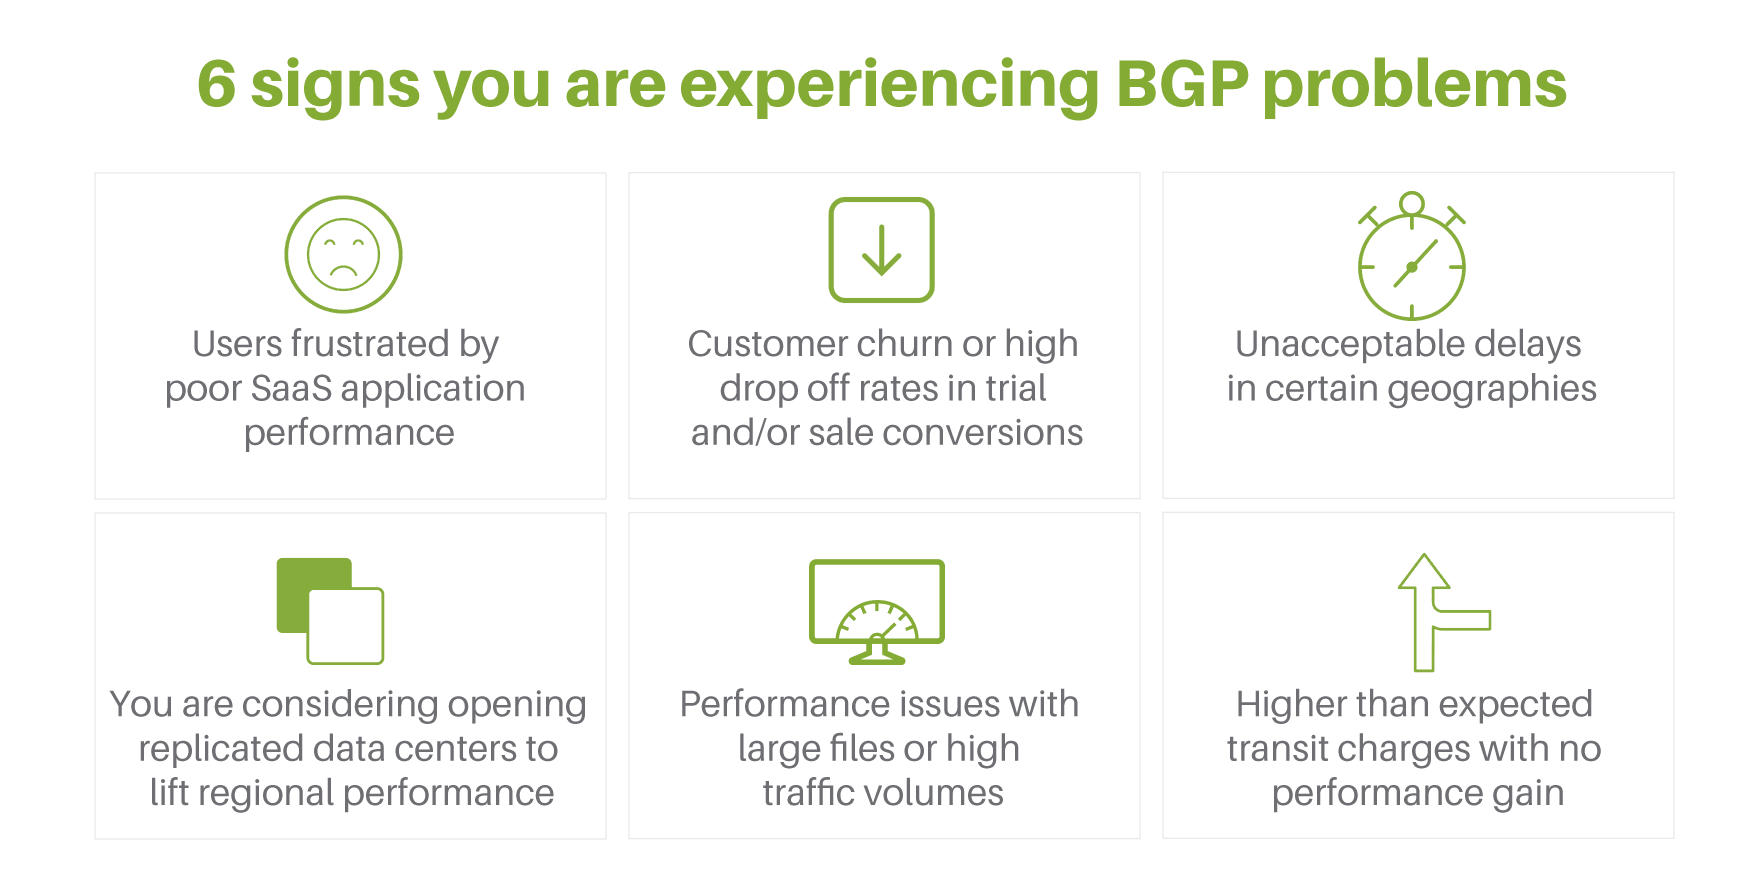 6 signs you are experiencing BGP problems